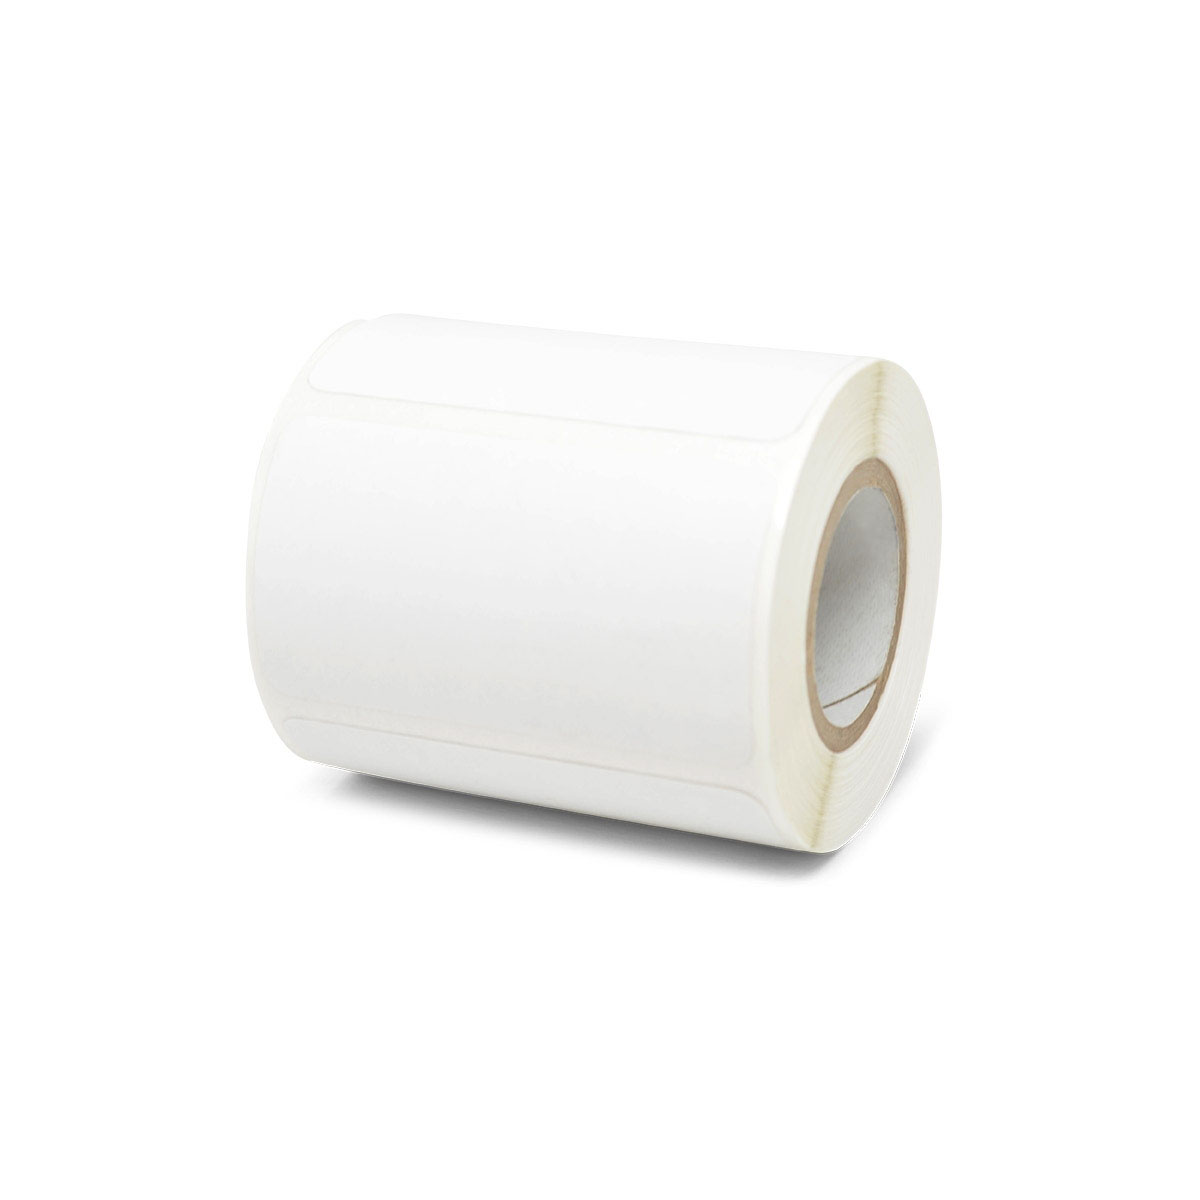 """2"""" x 1.25"""" Direct Thermal Mobile Printer Labels, 0.75"""" Core, 460 Labels/Roll (36 Rolls)"""